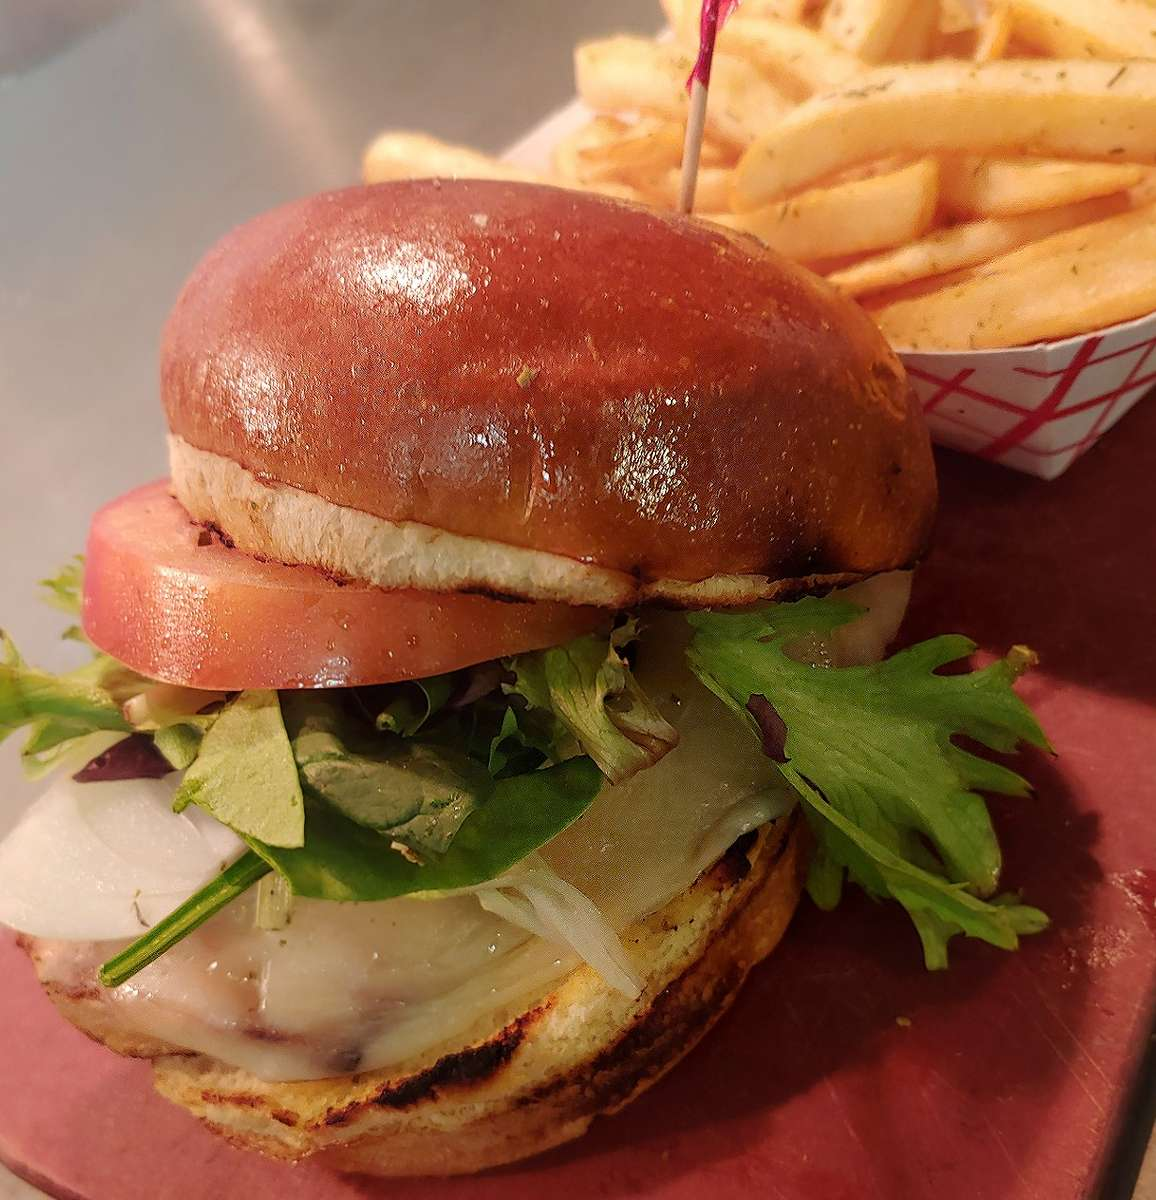 Fresh made to order Burgers and Sandwiches